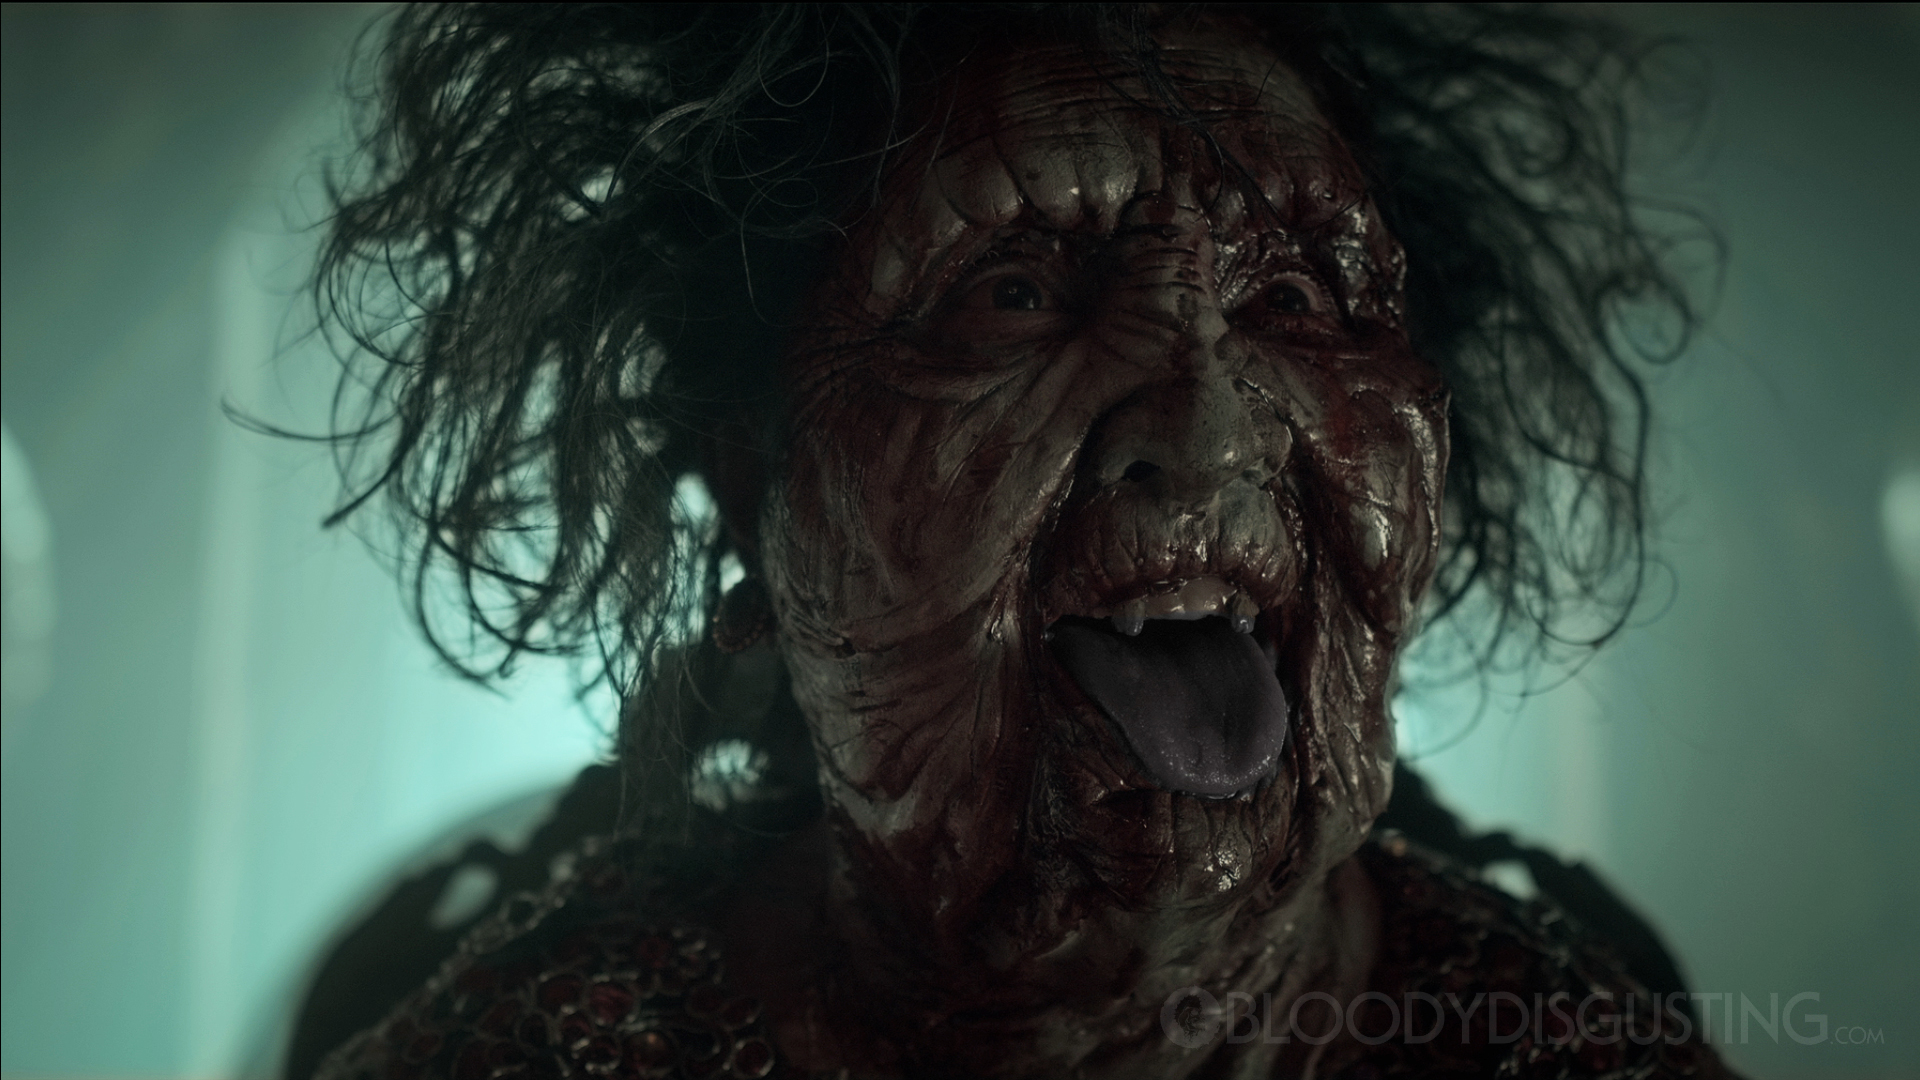 The ABCs Of Death 2 Releases First Slew Of Horrifying Images: See Them ALL Here!